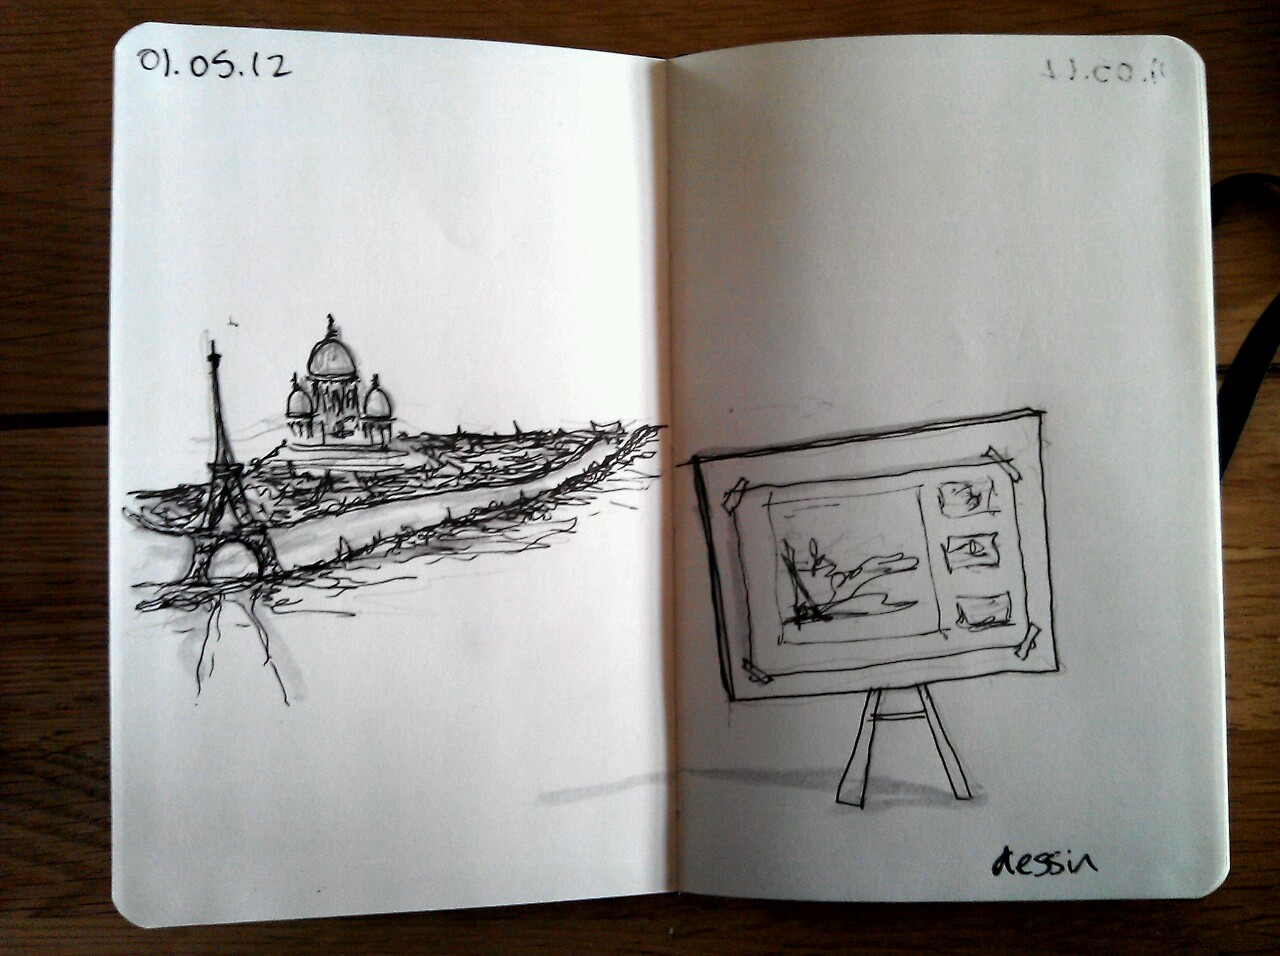 365 drawings later … day 91 … dessin